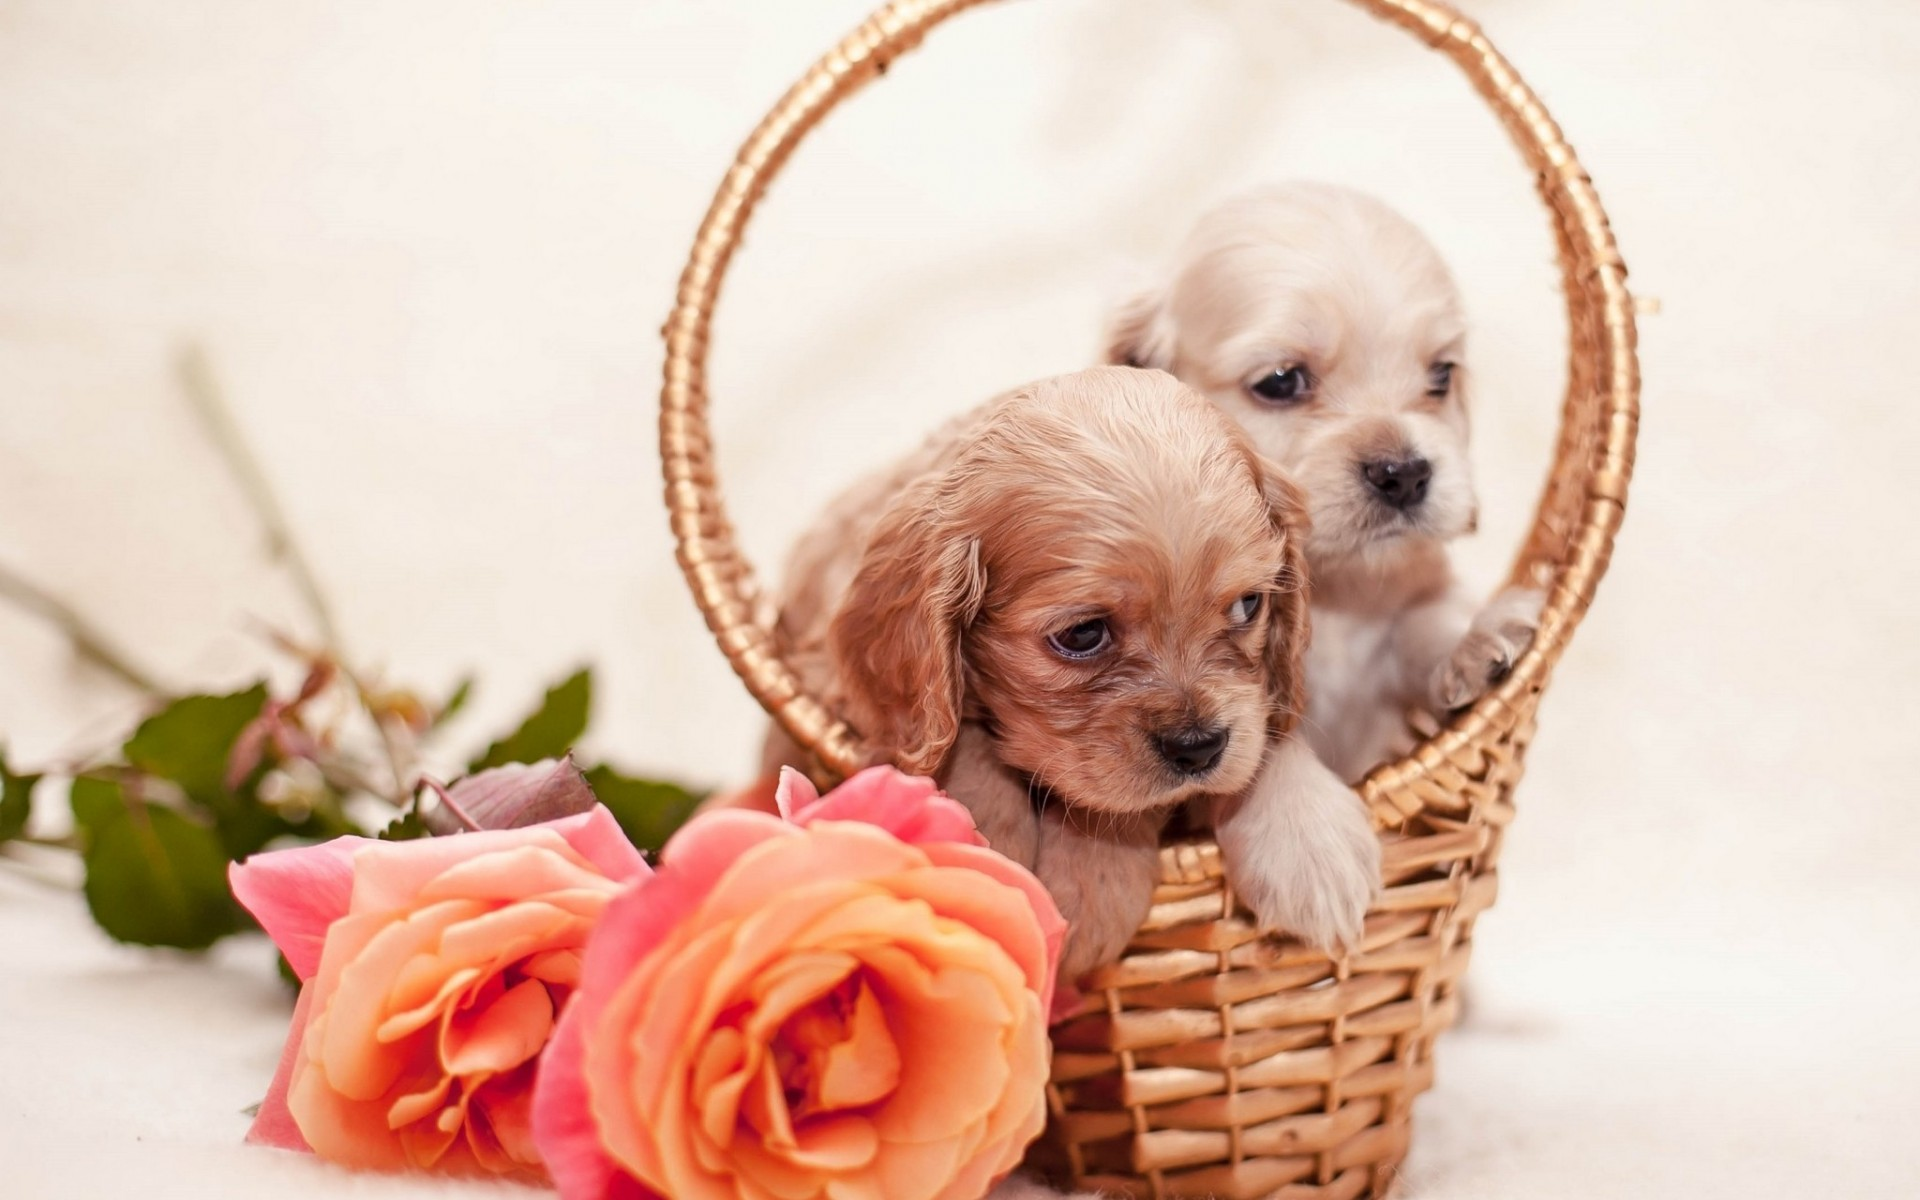 roses dogs puppies basket flowers 12x18 20X30 24X36 32x48 inch Poster Print 1(China (Mainland))